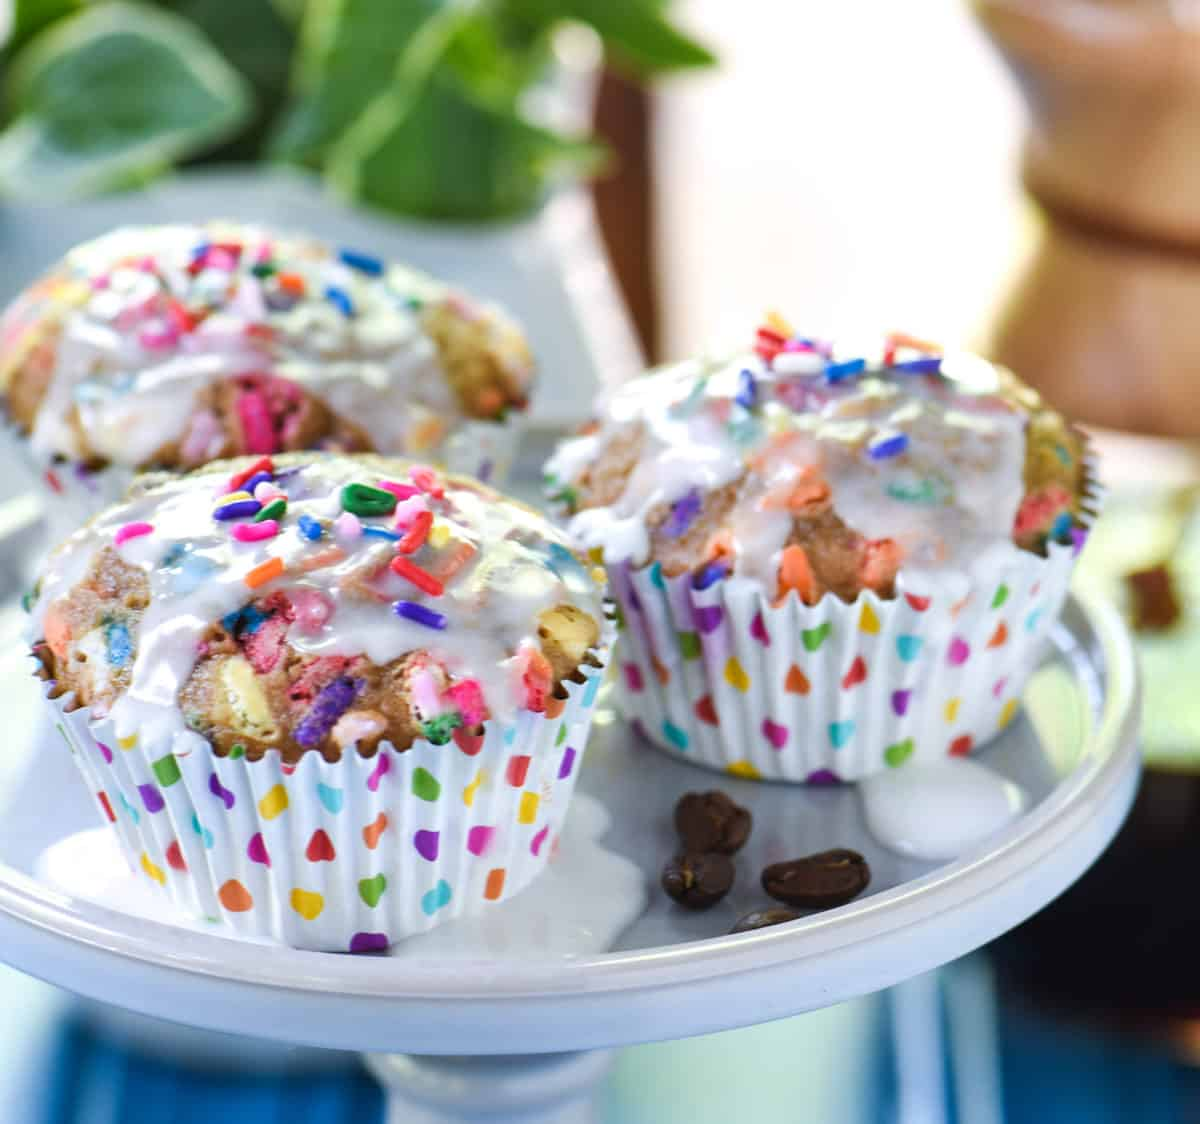 Outstanding Birthday Cake Latte Muffins Turn A Fun Coffeehouse Treat Into A Funny Birthday Cards Online Eattedamsfinfo